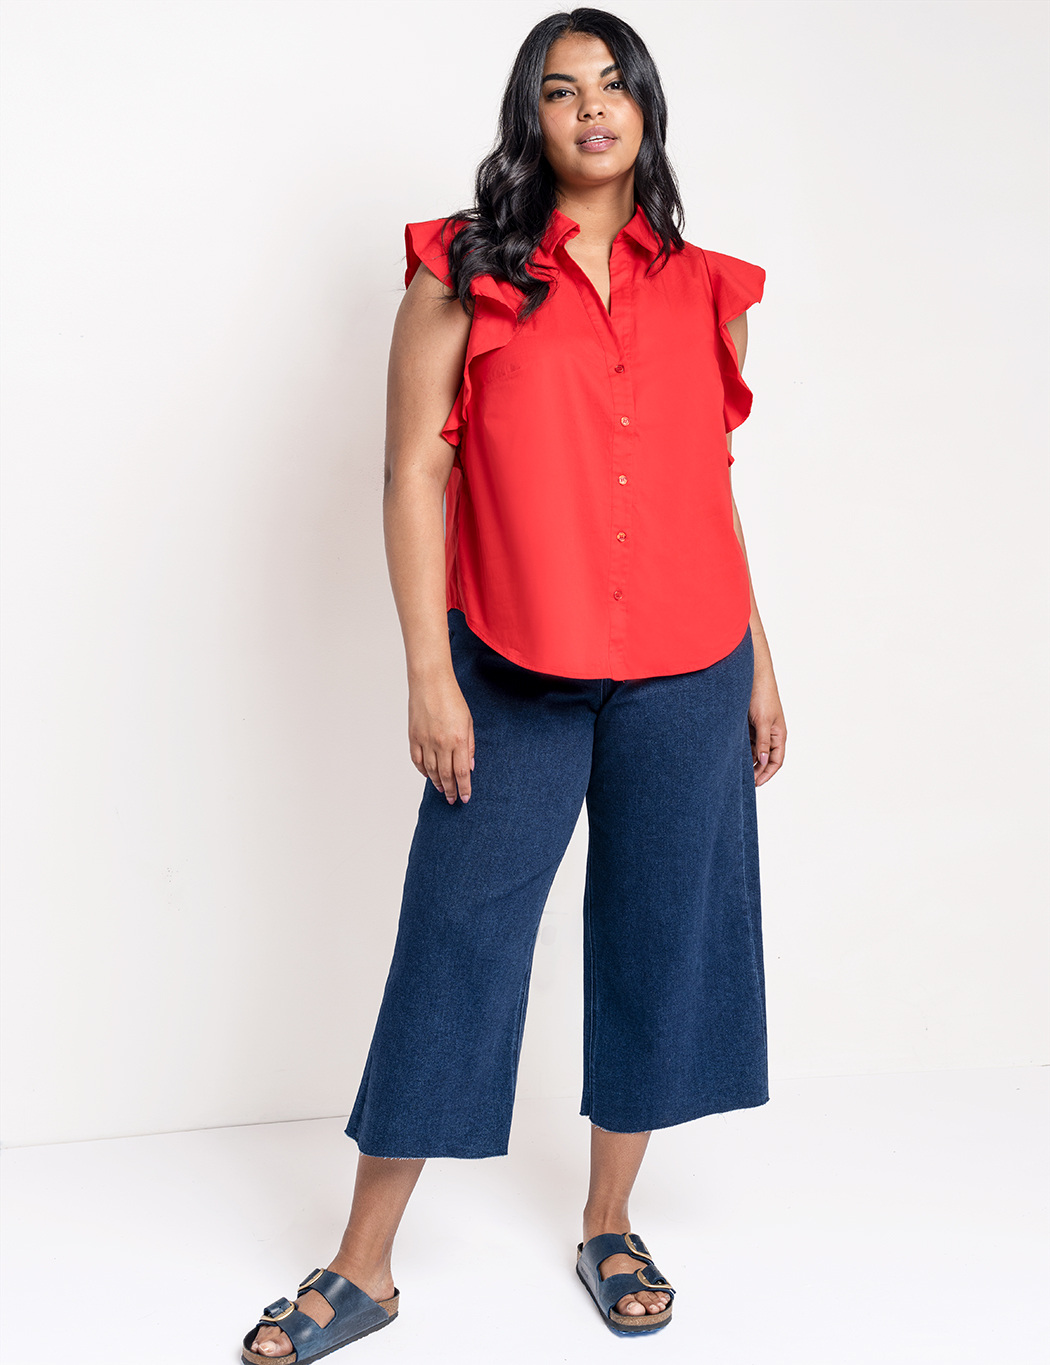 Flutter Sleeve with Collar